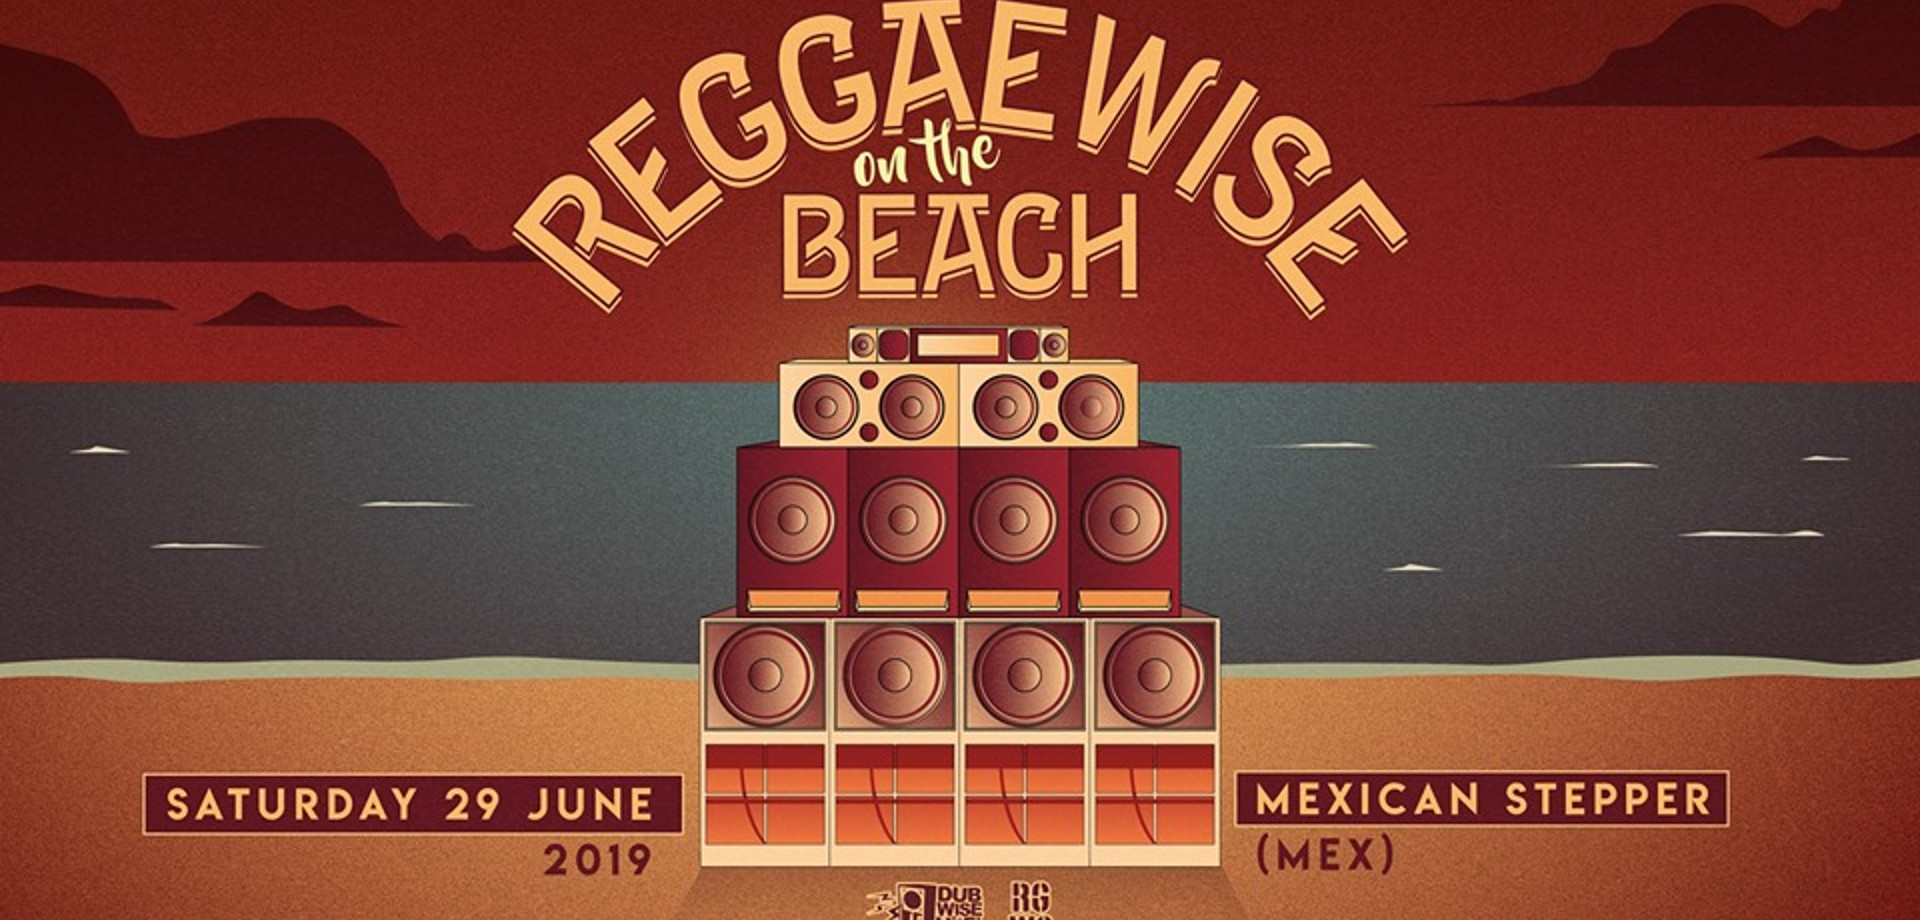 Reggaewise on the Beach